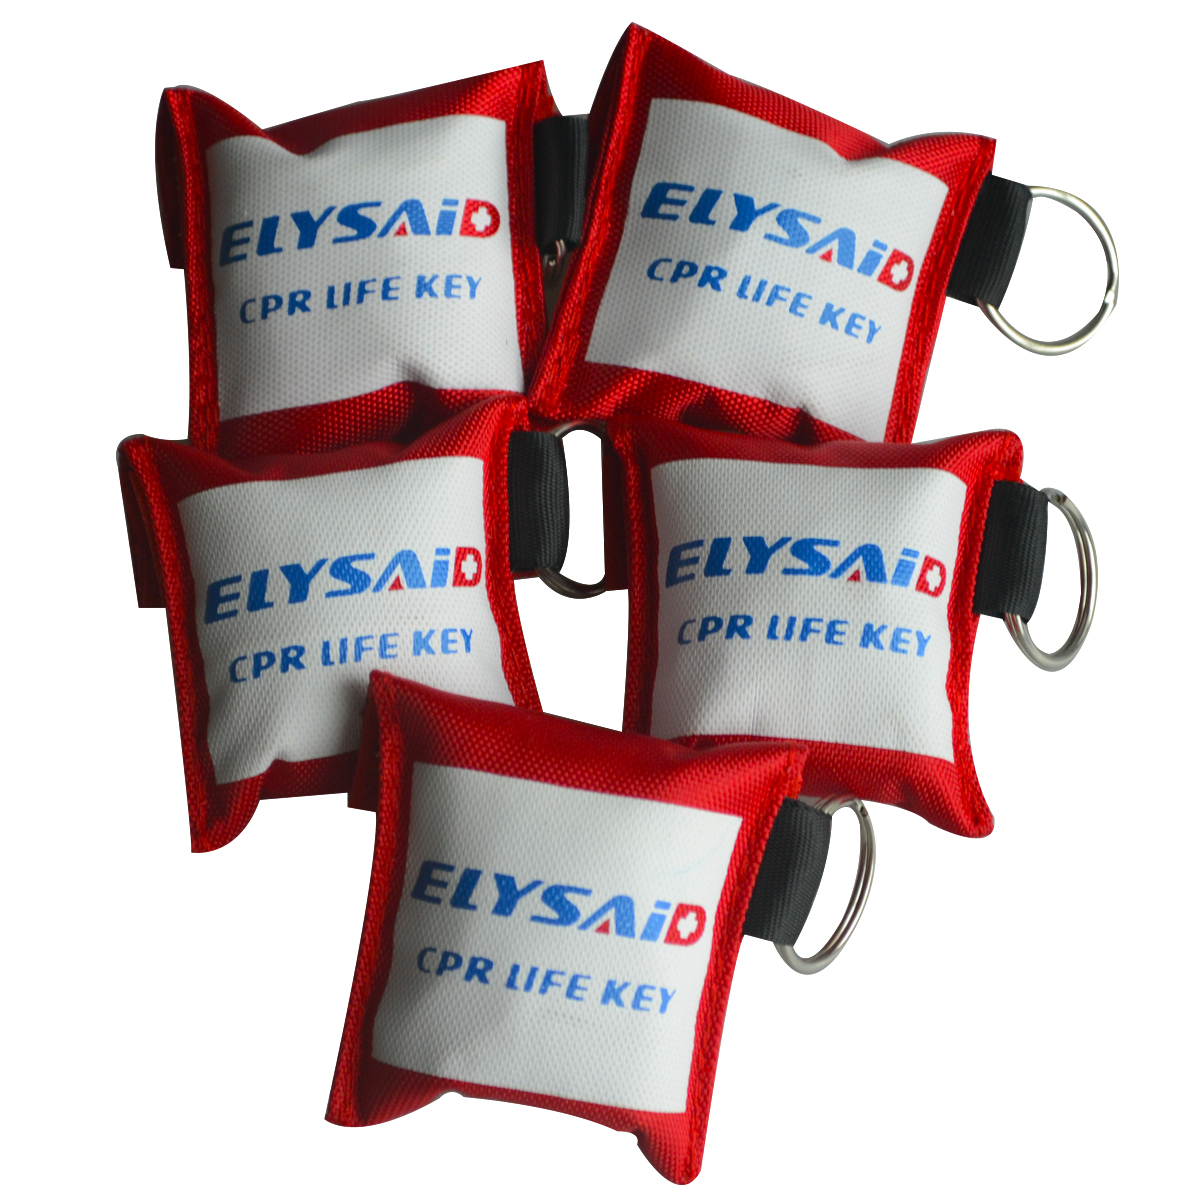 100Pcs/Pack CPR Mask With Latex Gloves Rescue Face Shield Keychain One-way Valve Disposable First Aid Resuscutator Save CPRMask 180pcs pack cpr mask cpr face shield with one way valve keychain keyring mask for emergency rescue first aid survival kits